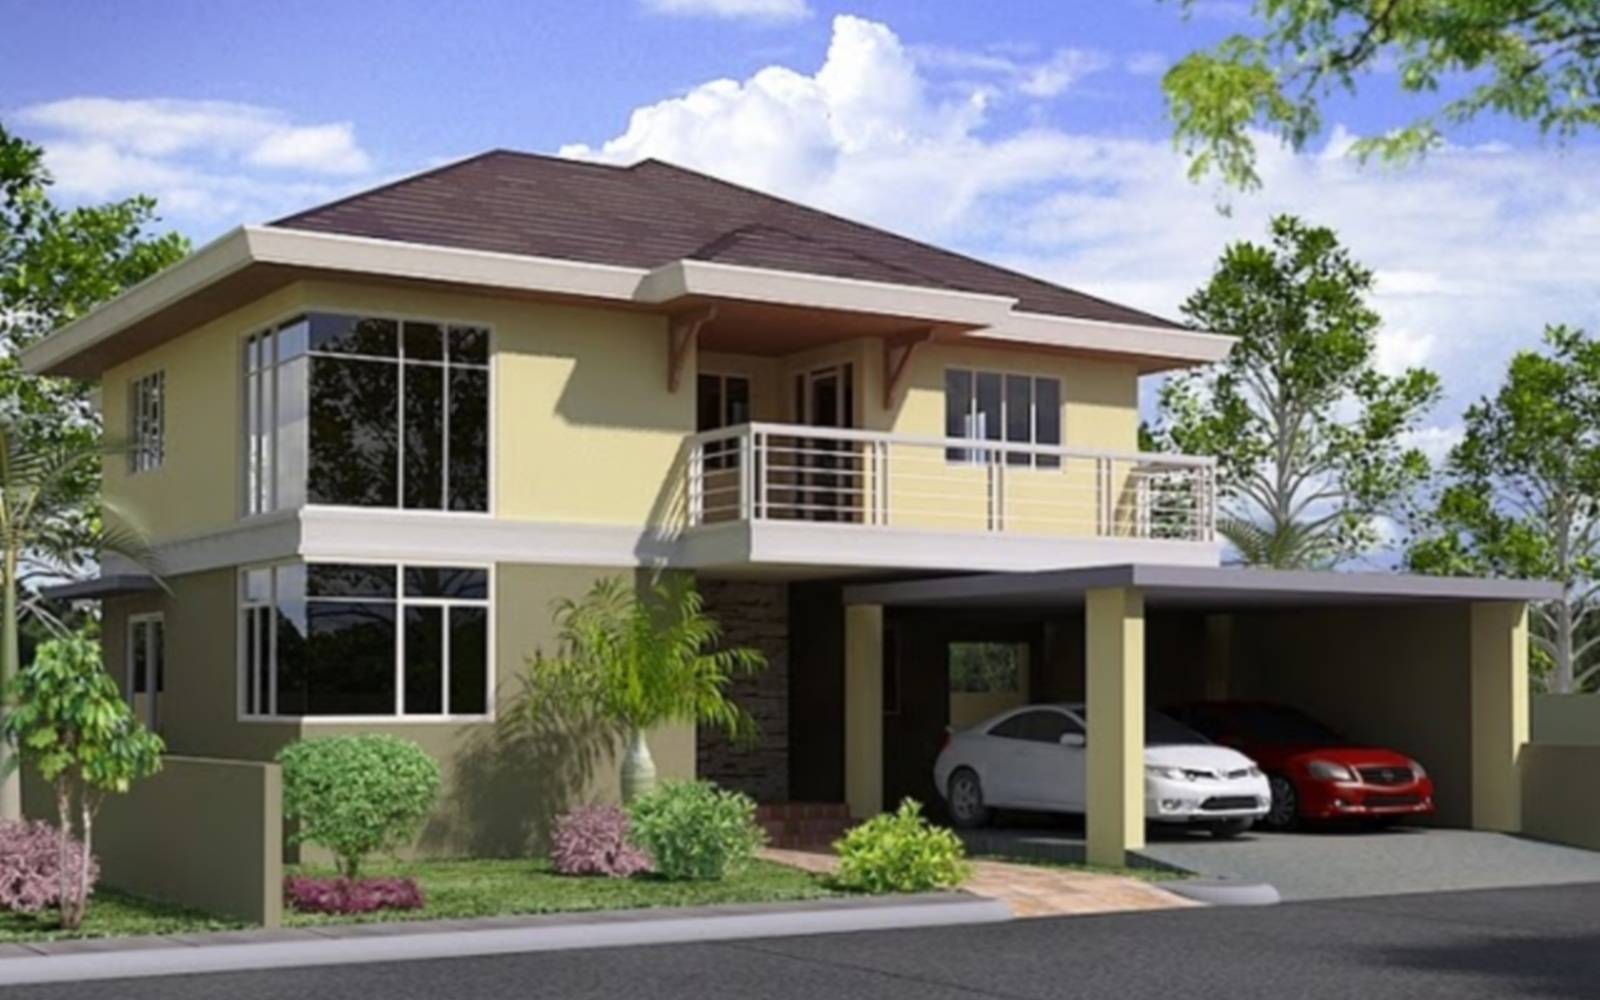 Kk two storey house plan philippines photoshop hd Two story house designs